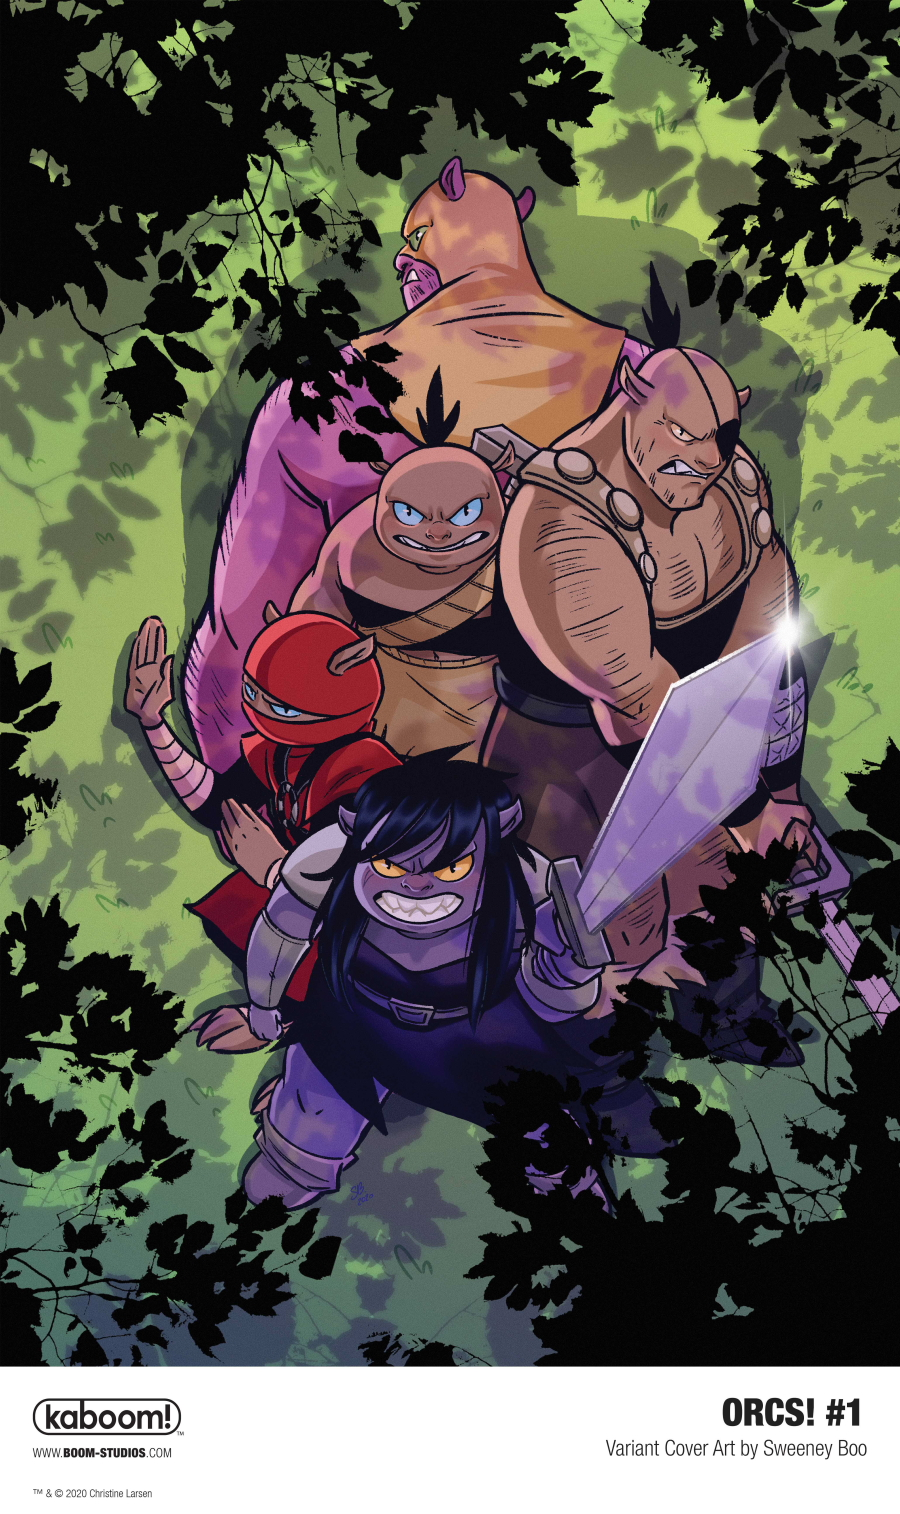 ORCS_001_Cover_Variant_PROMO-1